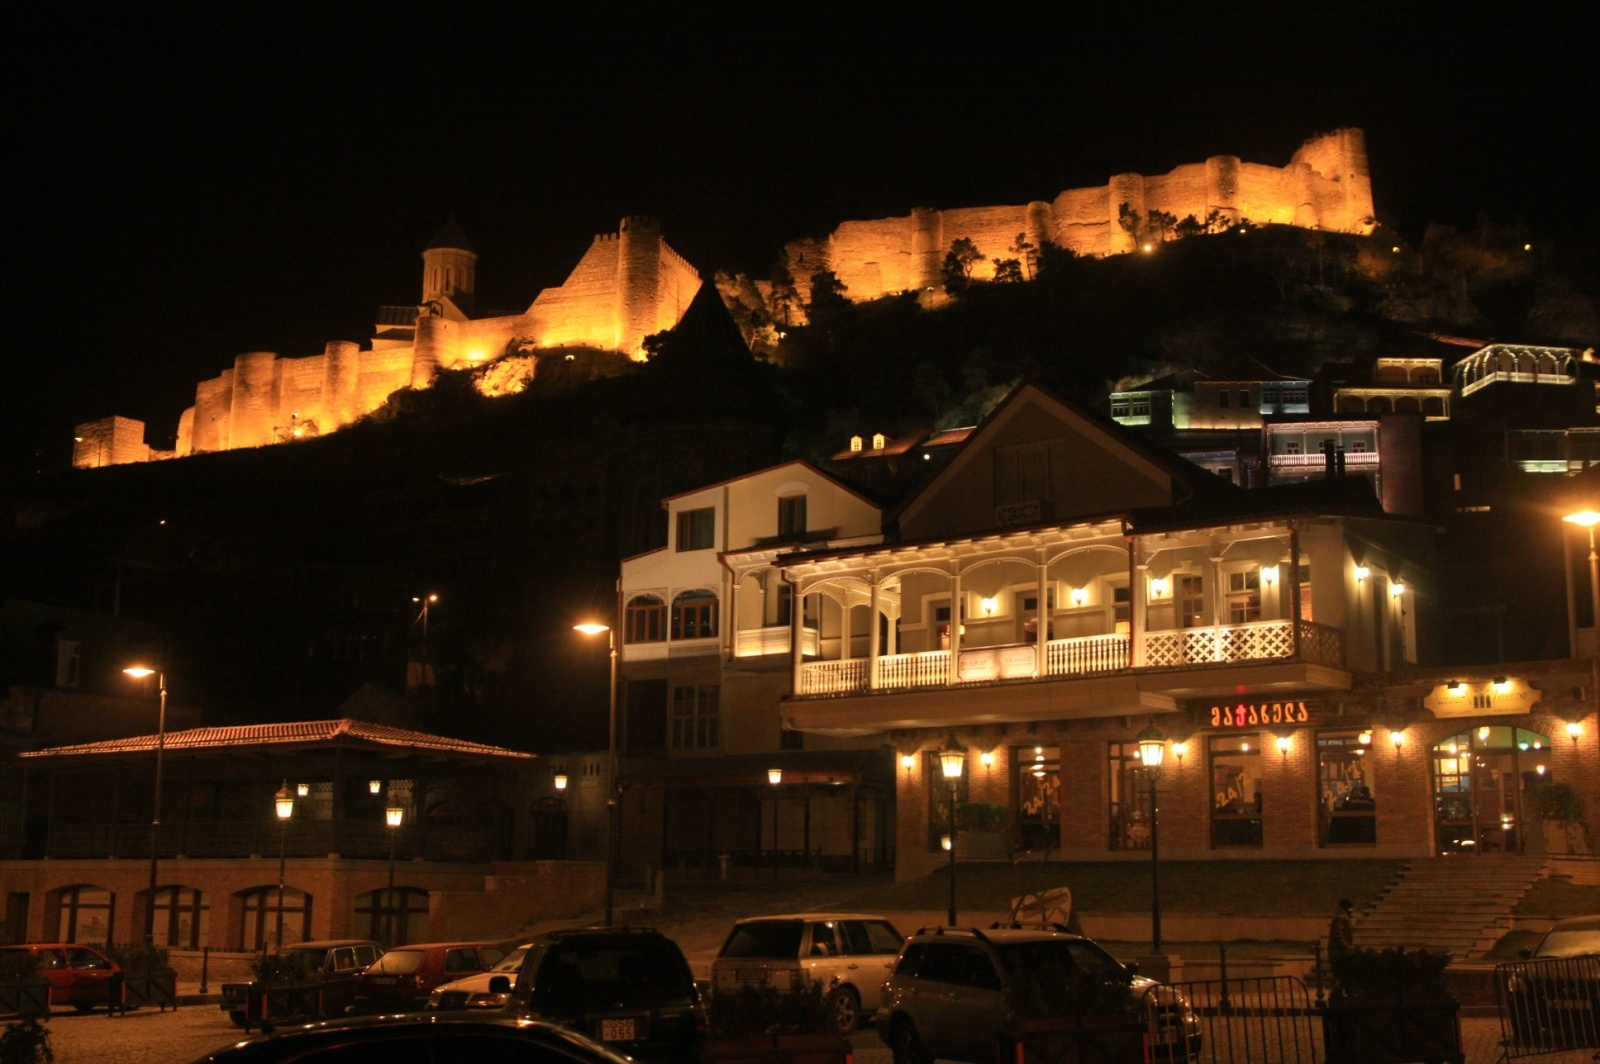 At night, Tbilisi transforms completely thanks to the beautifully-lit buildings